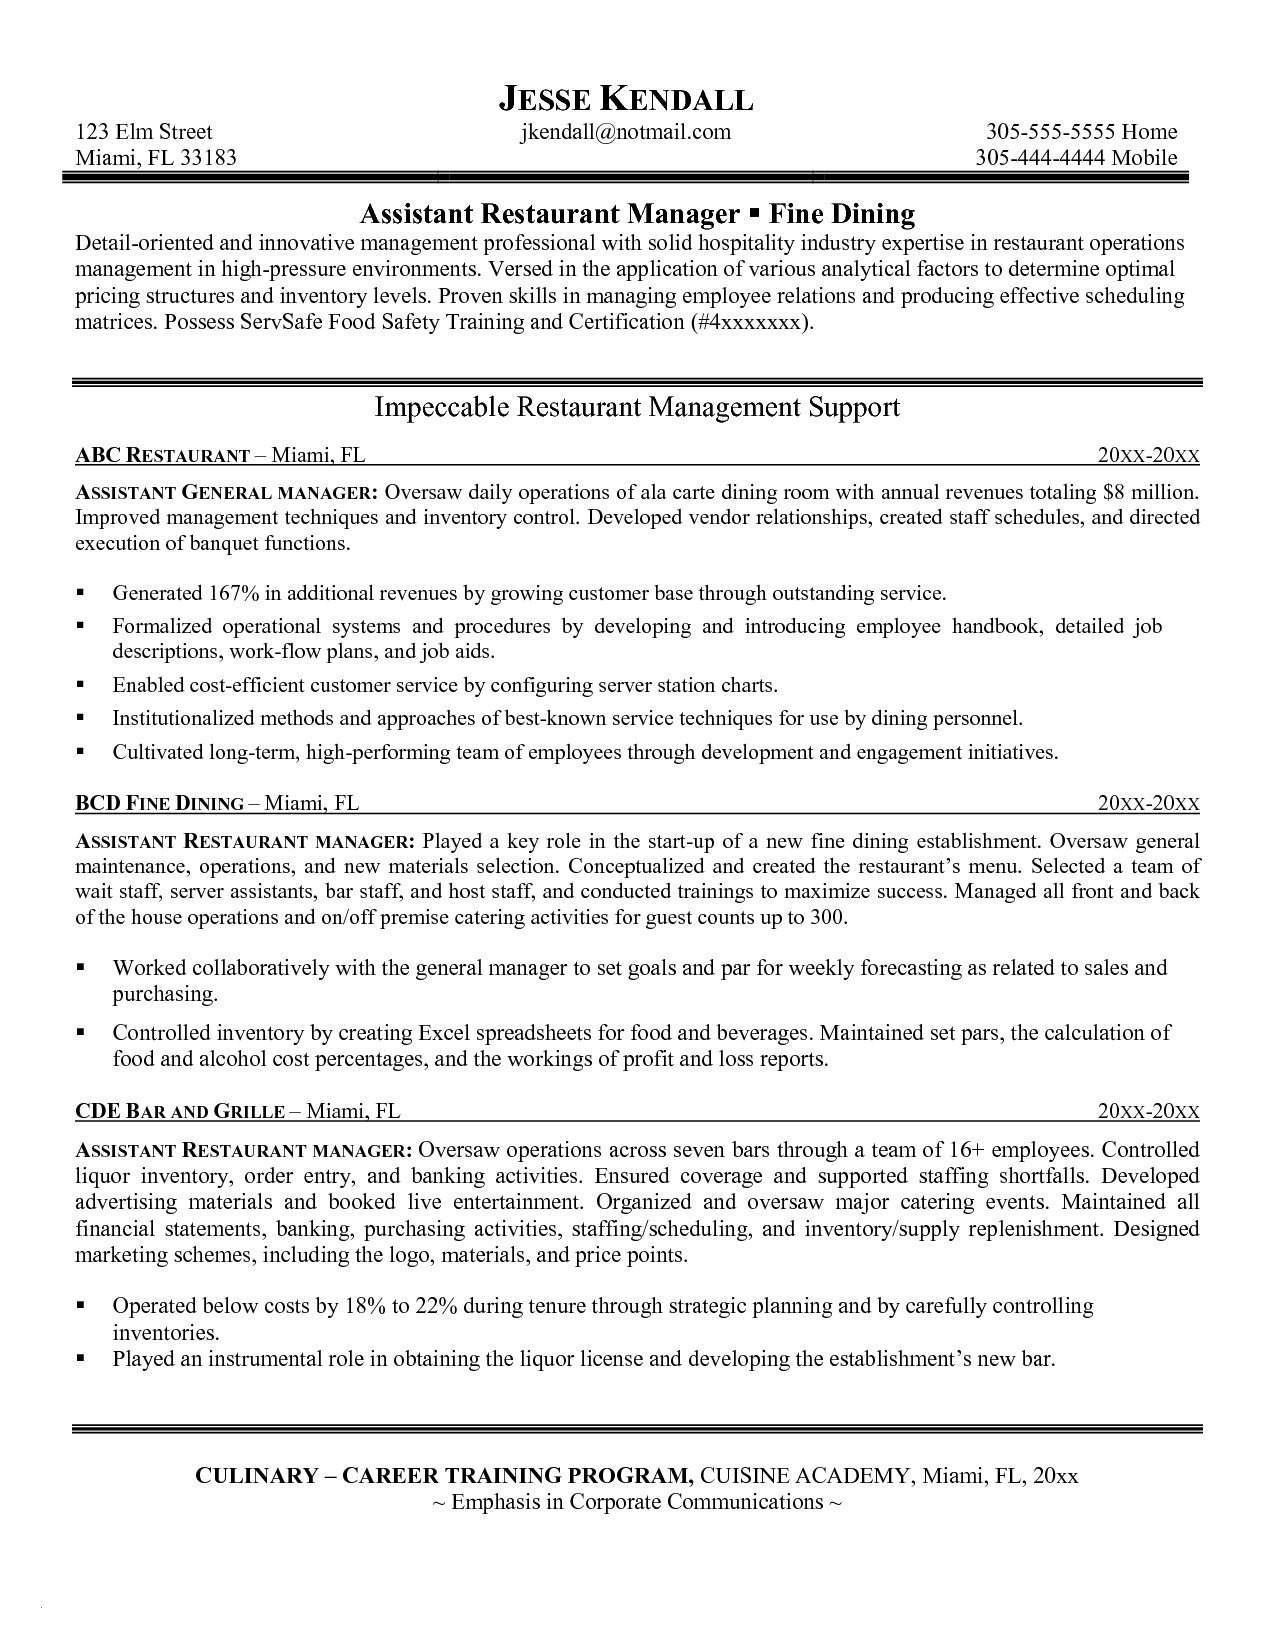 Restaurants Manager Resume - Restaurant General Manager Resume Paragraphrewriter